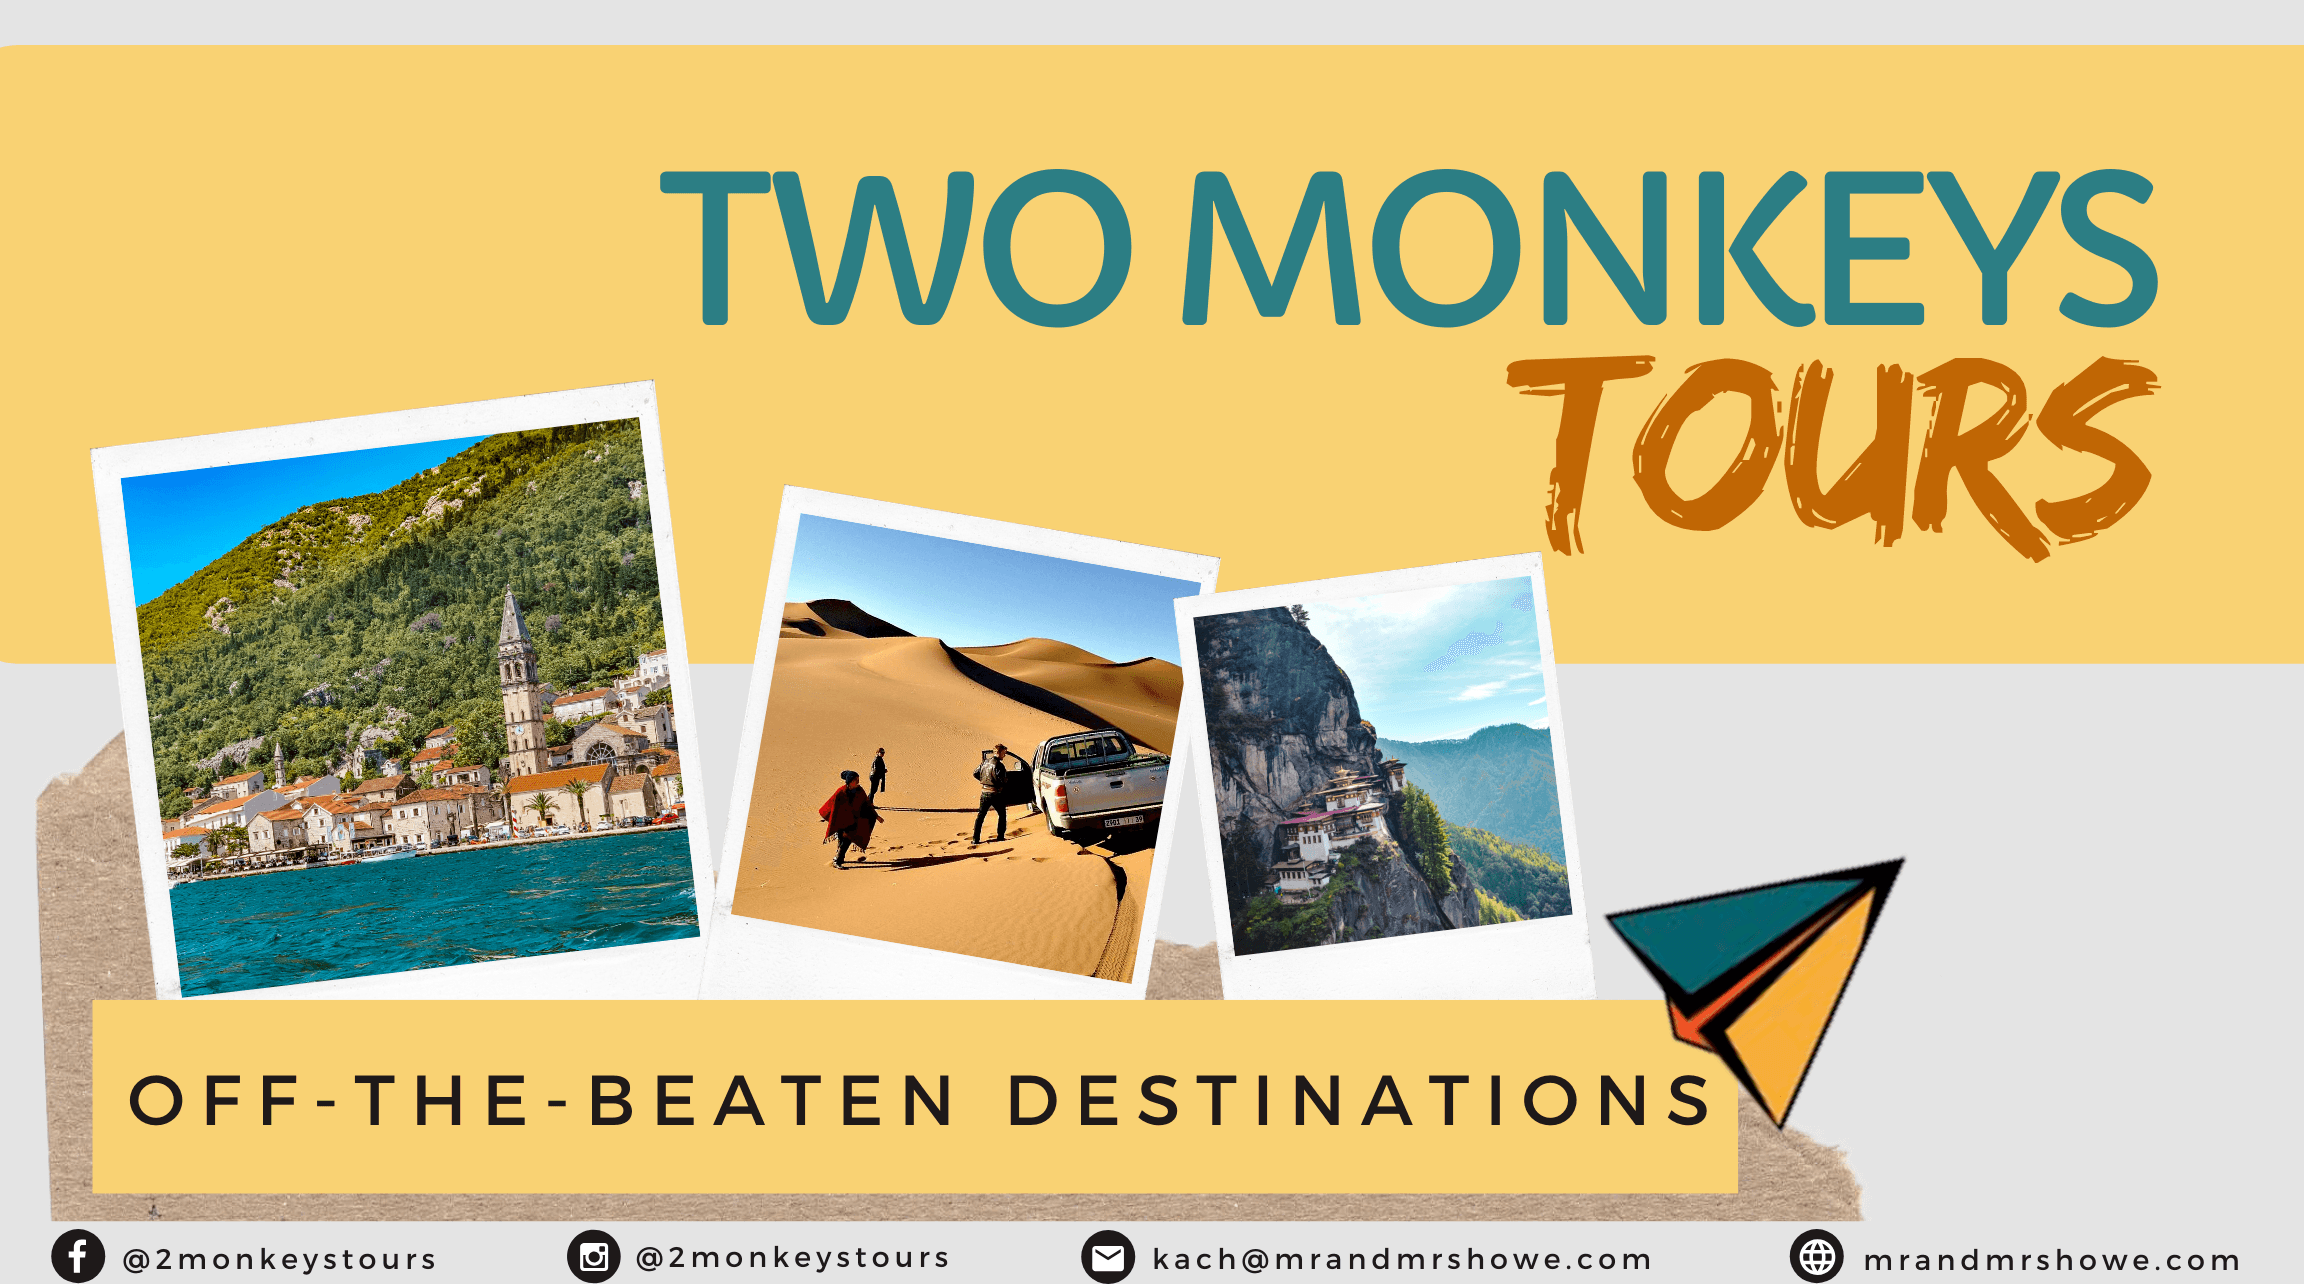 Two Monkeys Tours